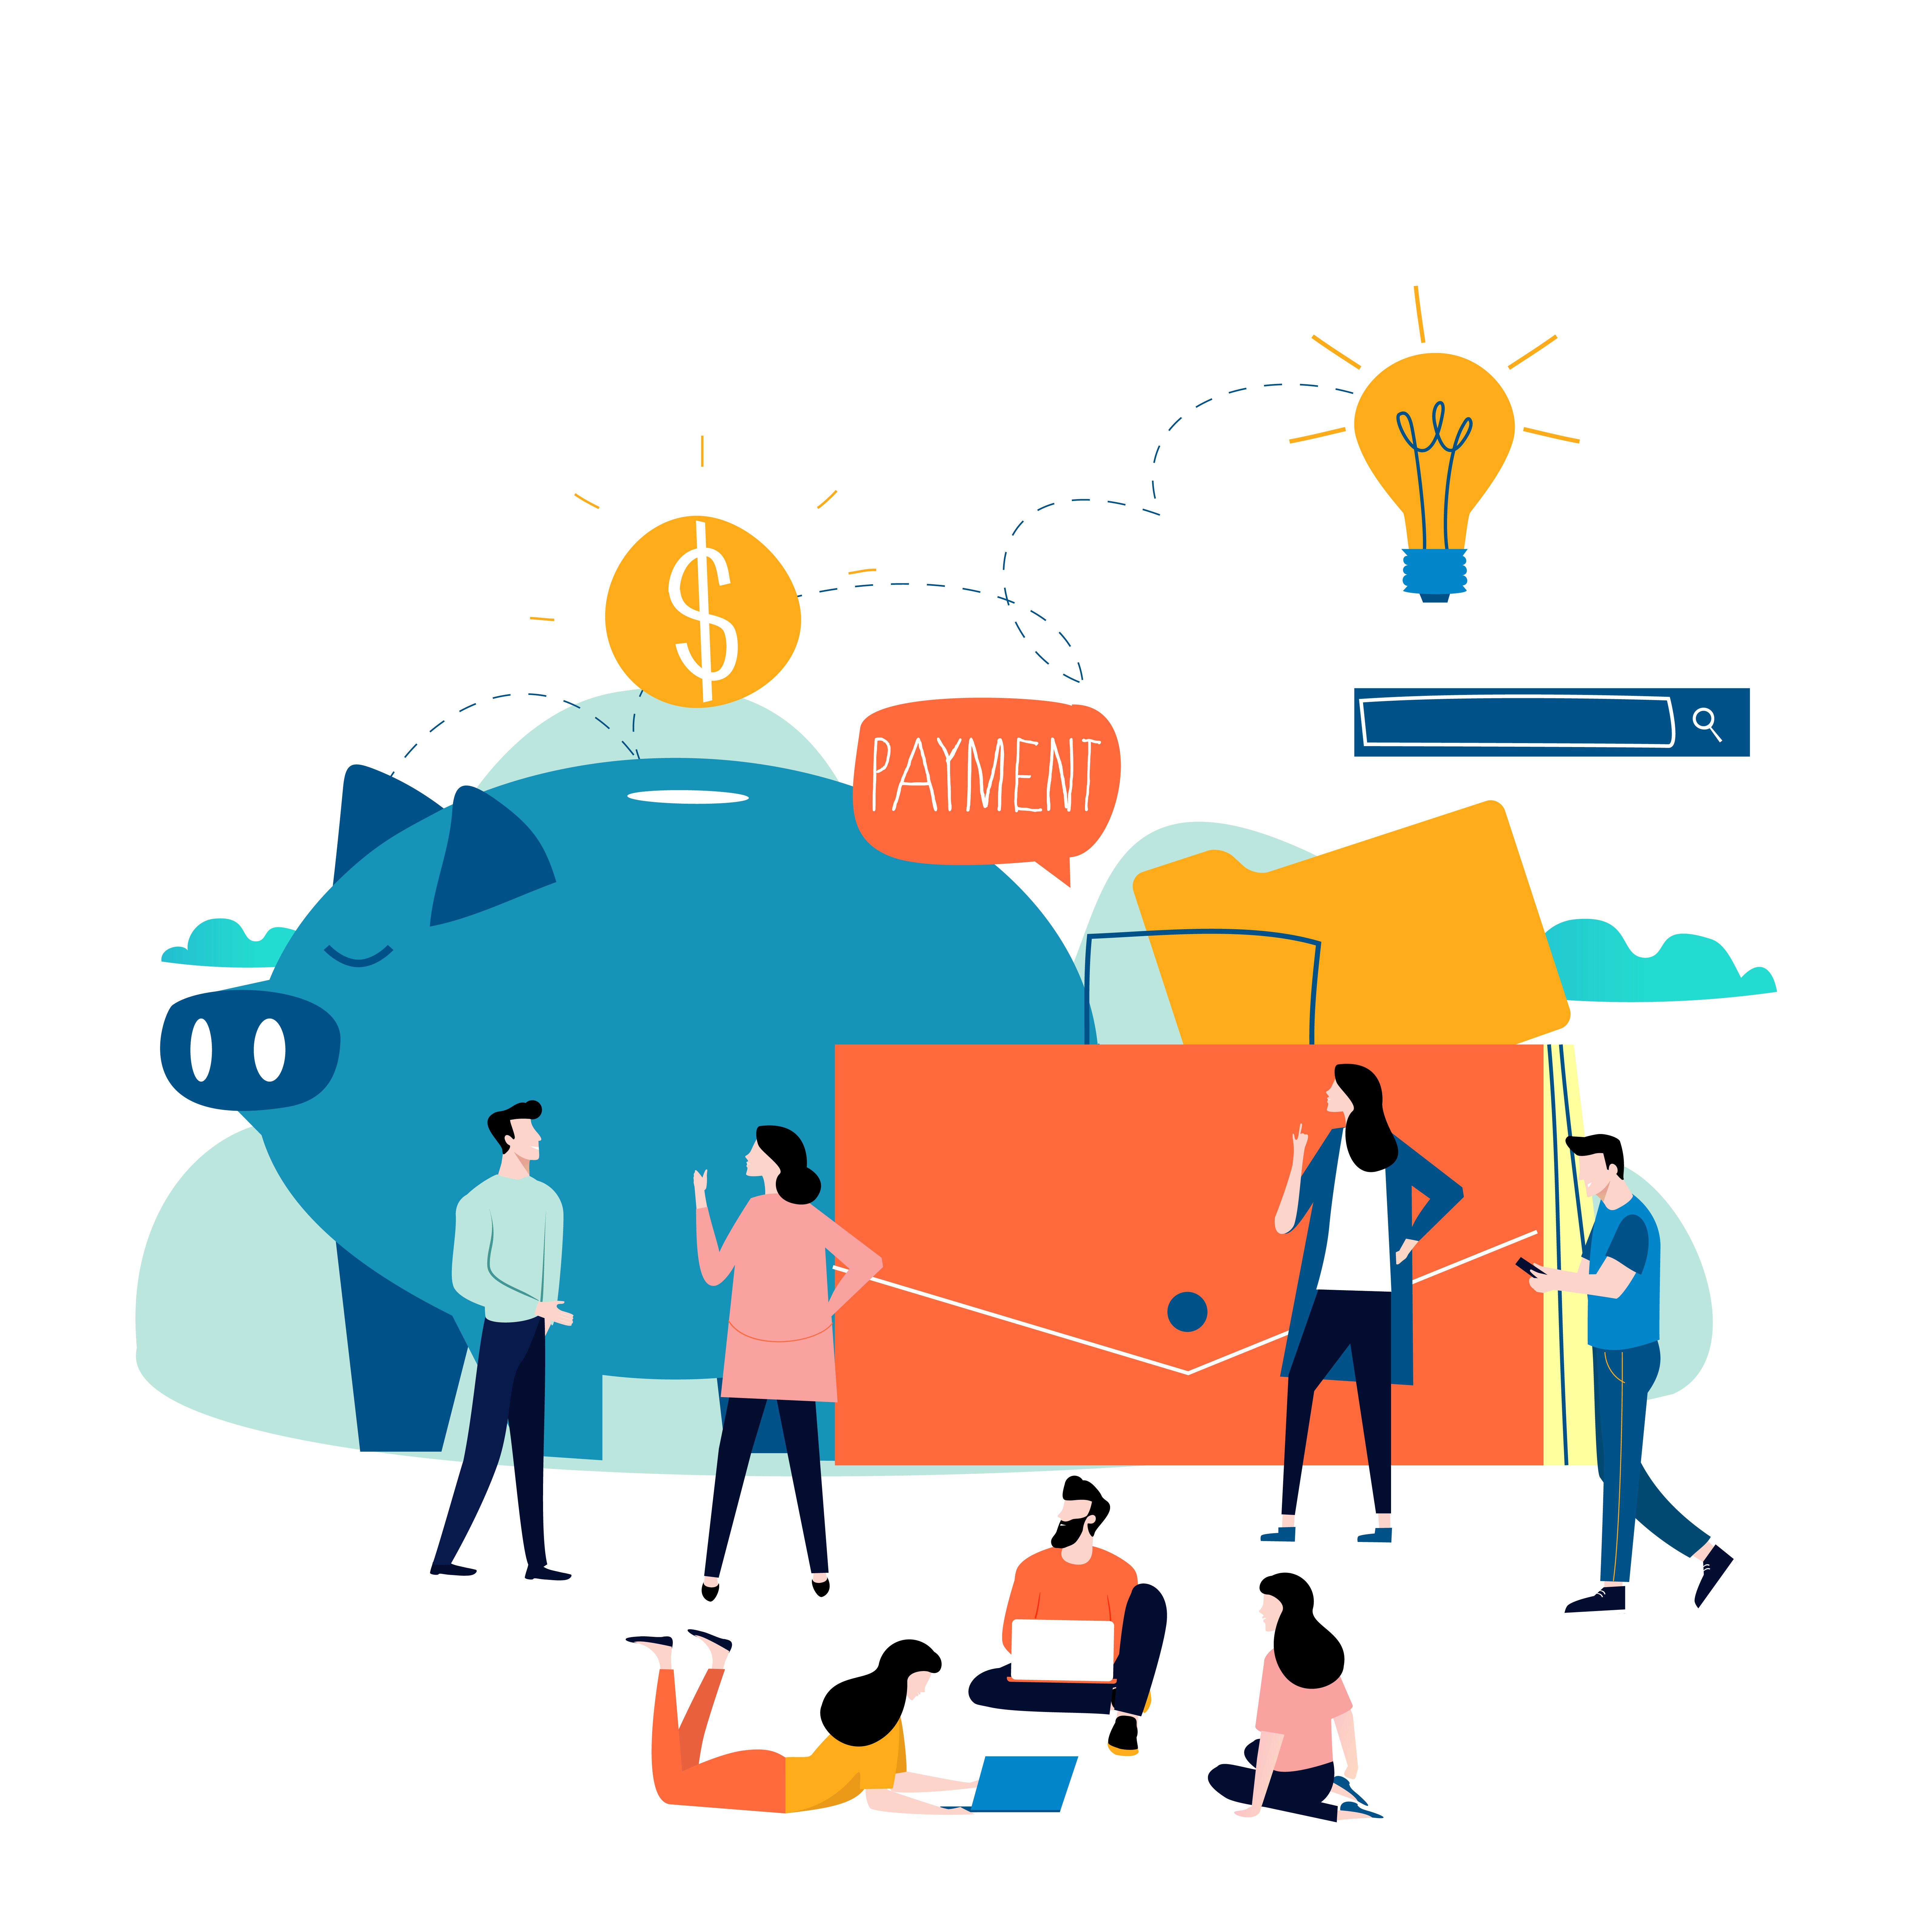 Vector Illustration Web Designs: Business And Finance Services, Money Loan, Budget Planning